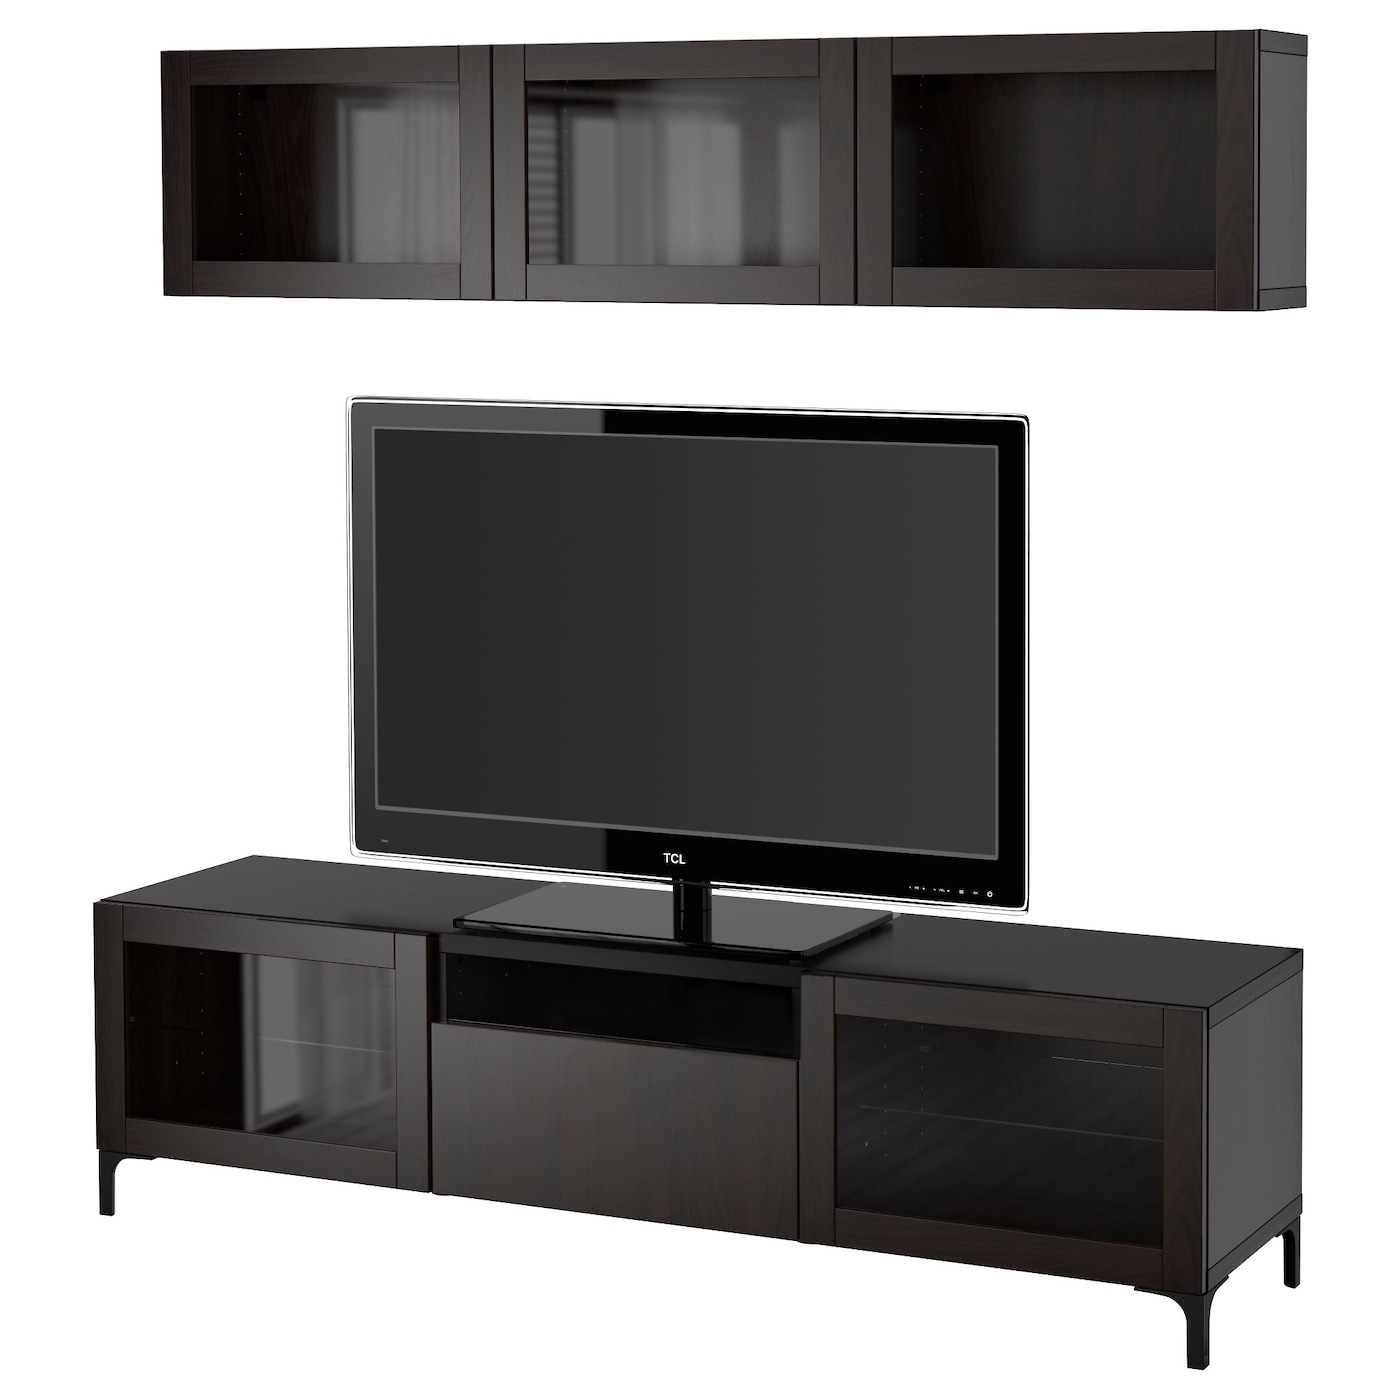 best tv storage combination glass doors lappviken sindvik black brown clear glass 180 x 20 40 x. Black Bedroom Furniture Sets. Home Design Ideas